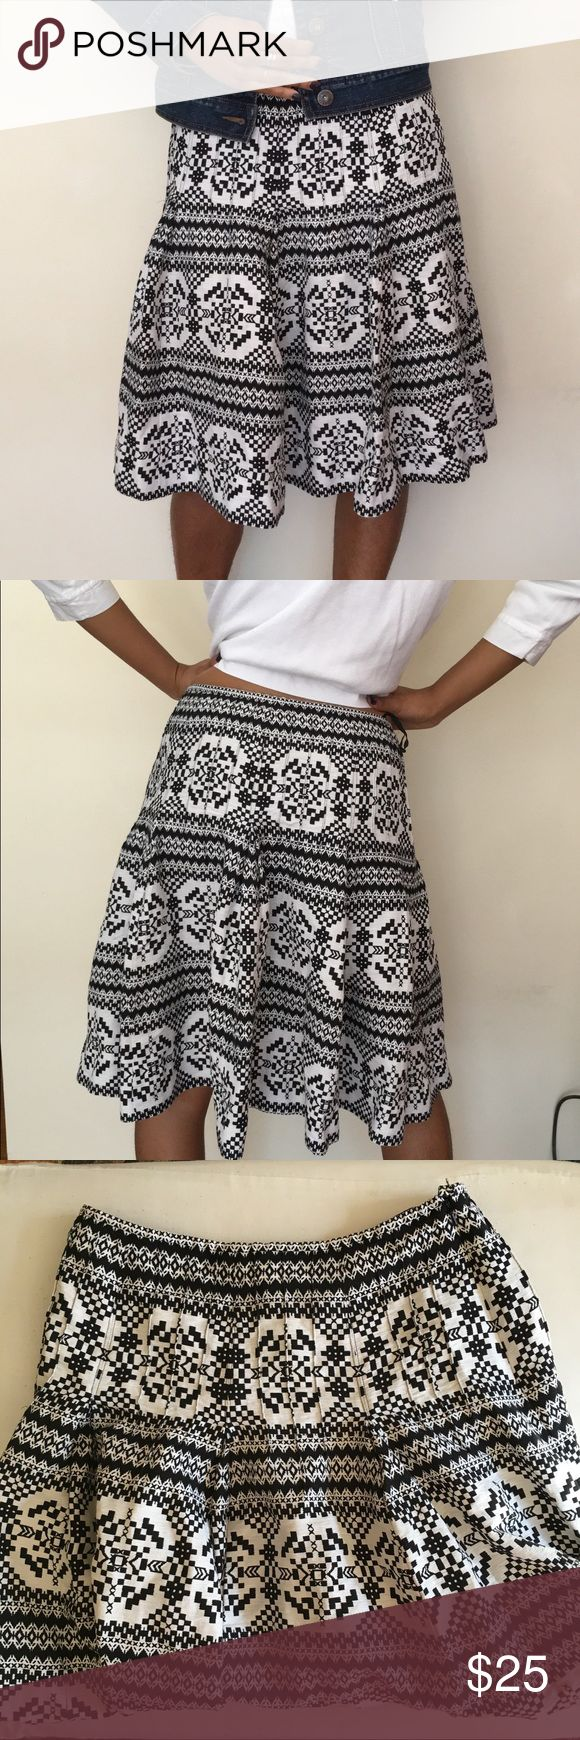 """Silk Nine West Black and White Midi Skirt Very cute Nine West Midi skirt perfect for spring! It's lightweight with a nice pattern in black and white. Size 4. Barely worn. No tears or stains. 70% silk, 30% linen.   Waist flat: 14"""" Length: 21""""  No trades please, offers welcome. Let me know if you have any questions 😊 Nine West Skirts Midi"""